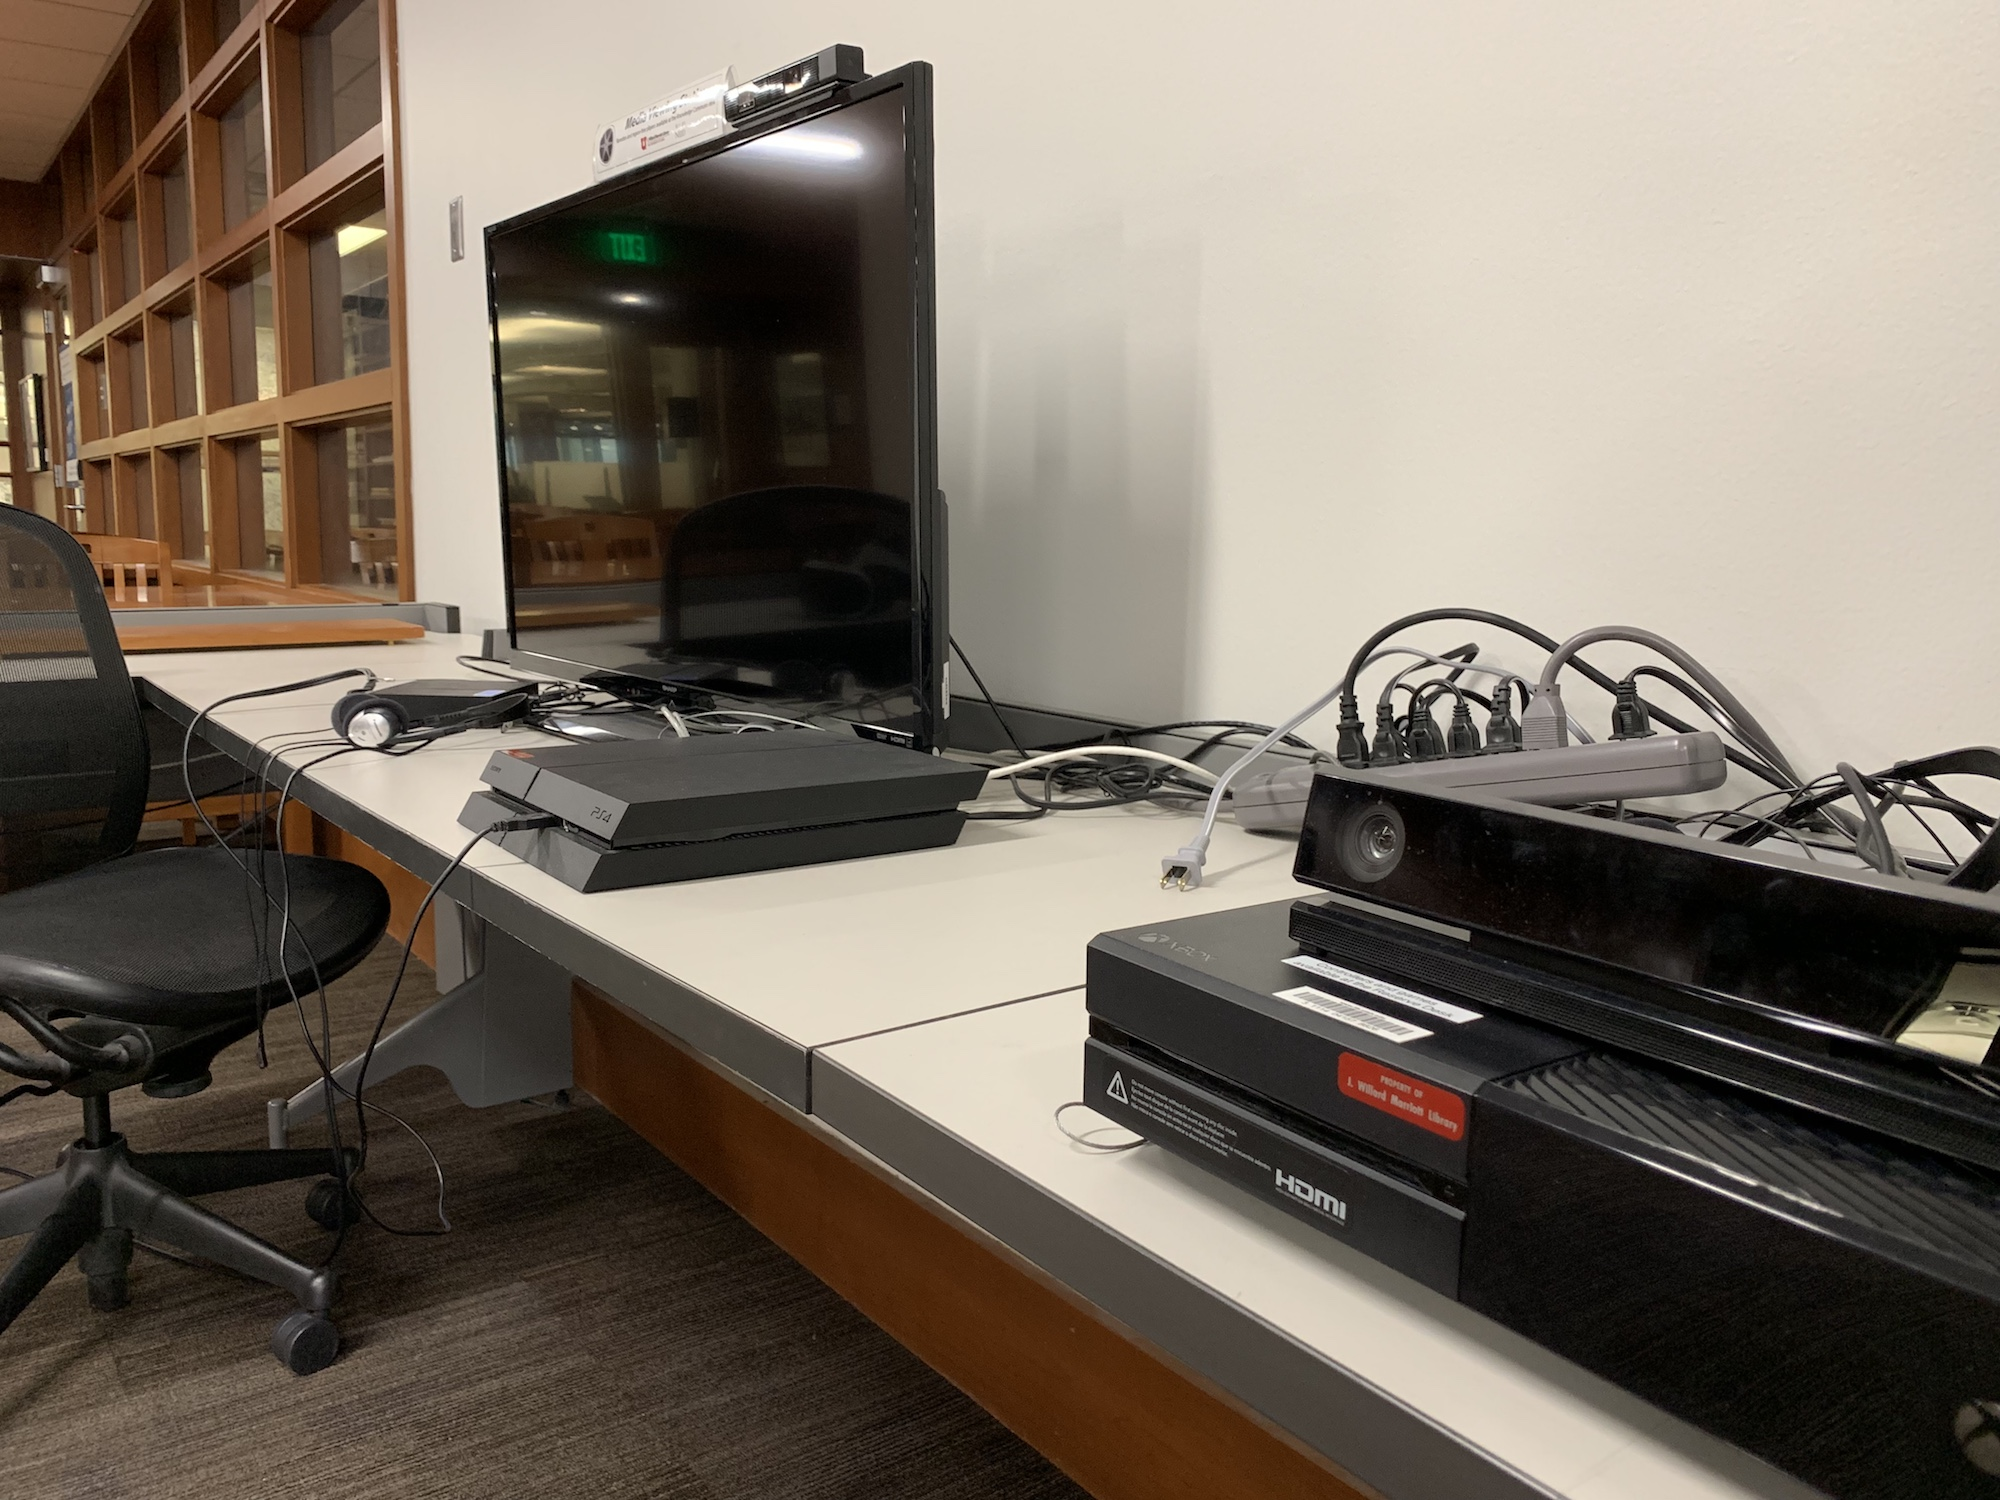 The Xbox One and PS4 area in the fine arts library.